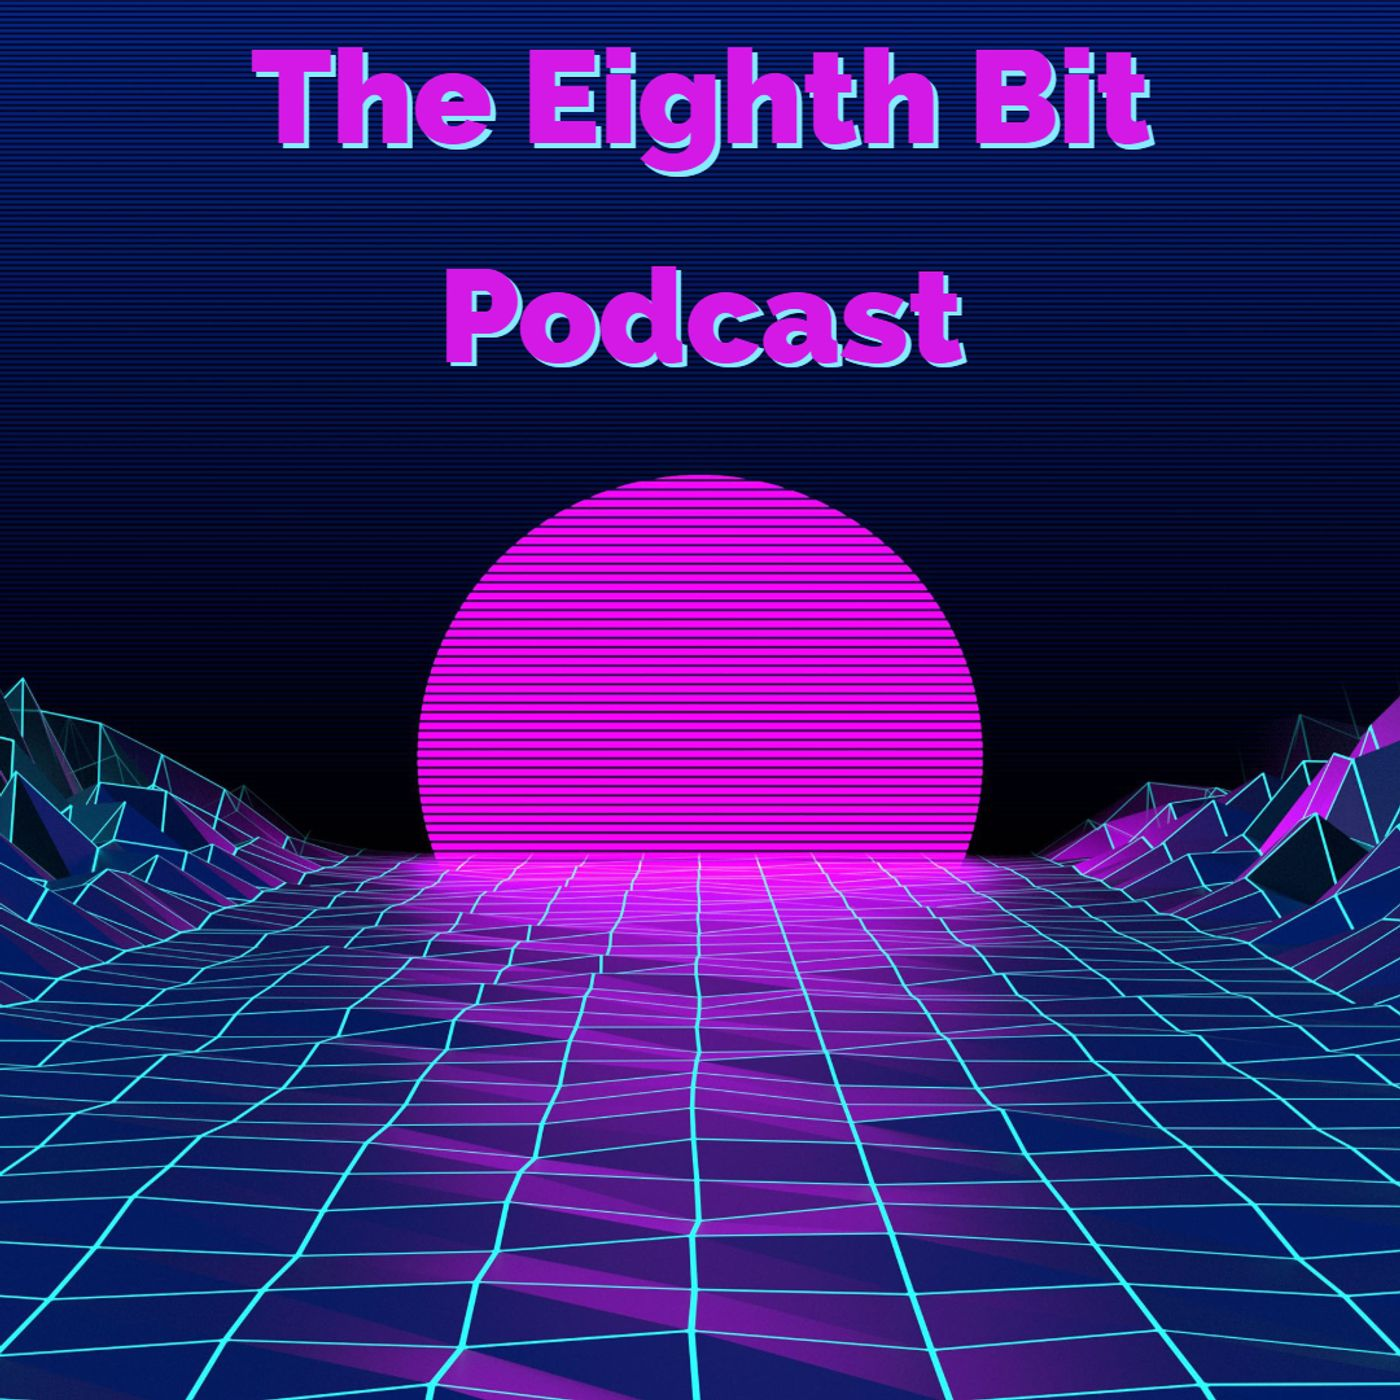 The Eighth Bit Podcast